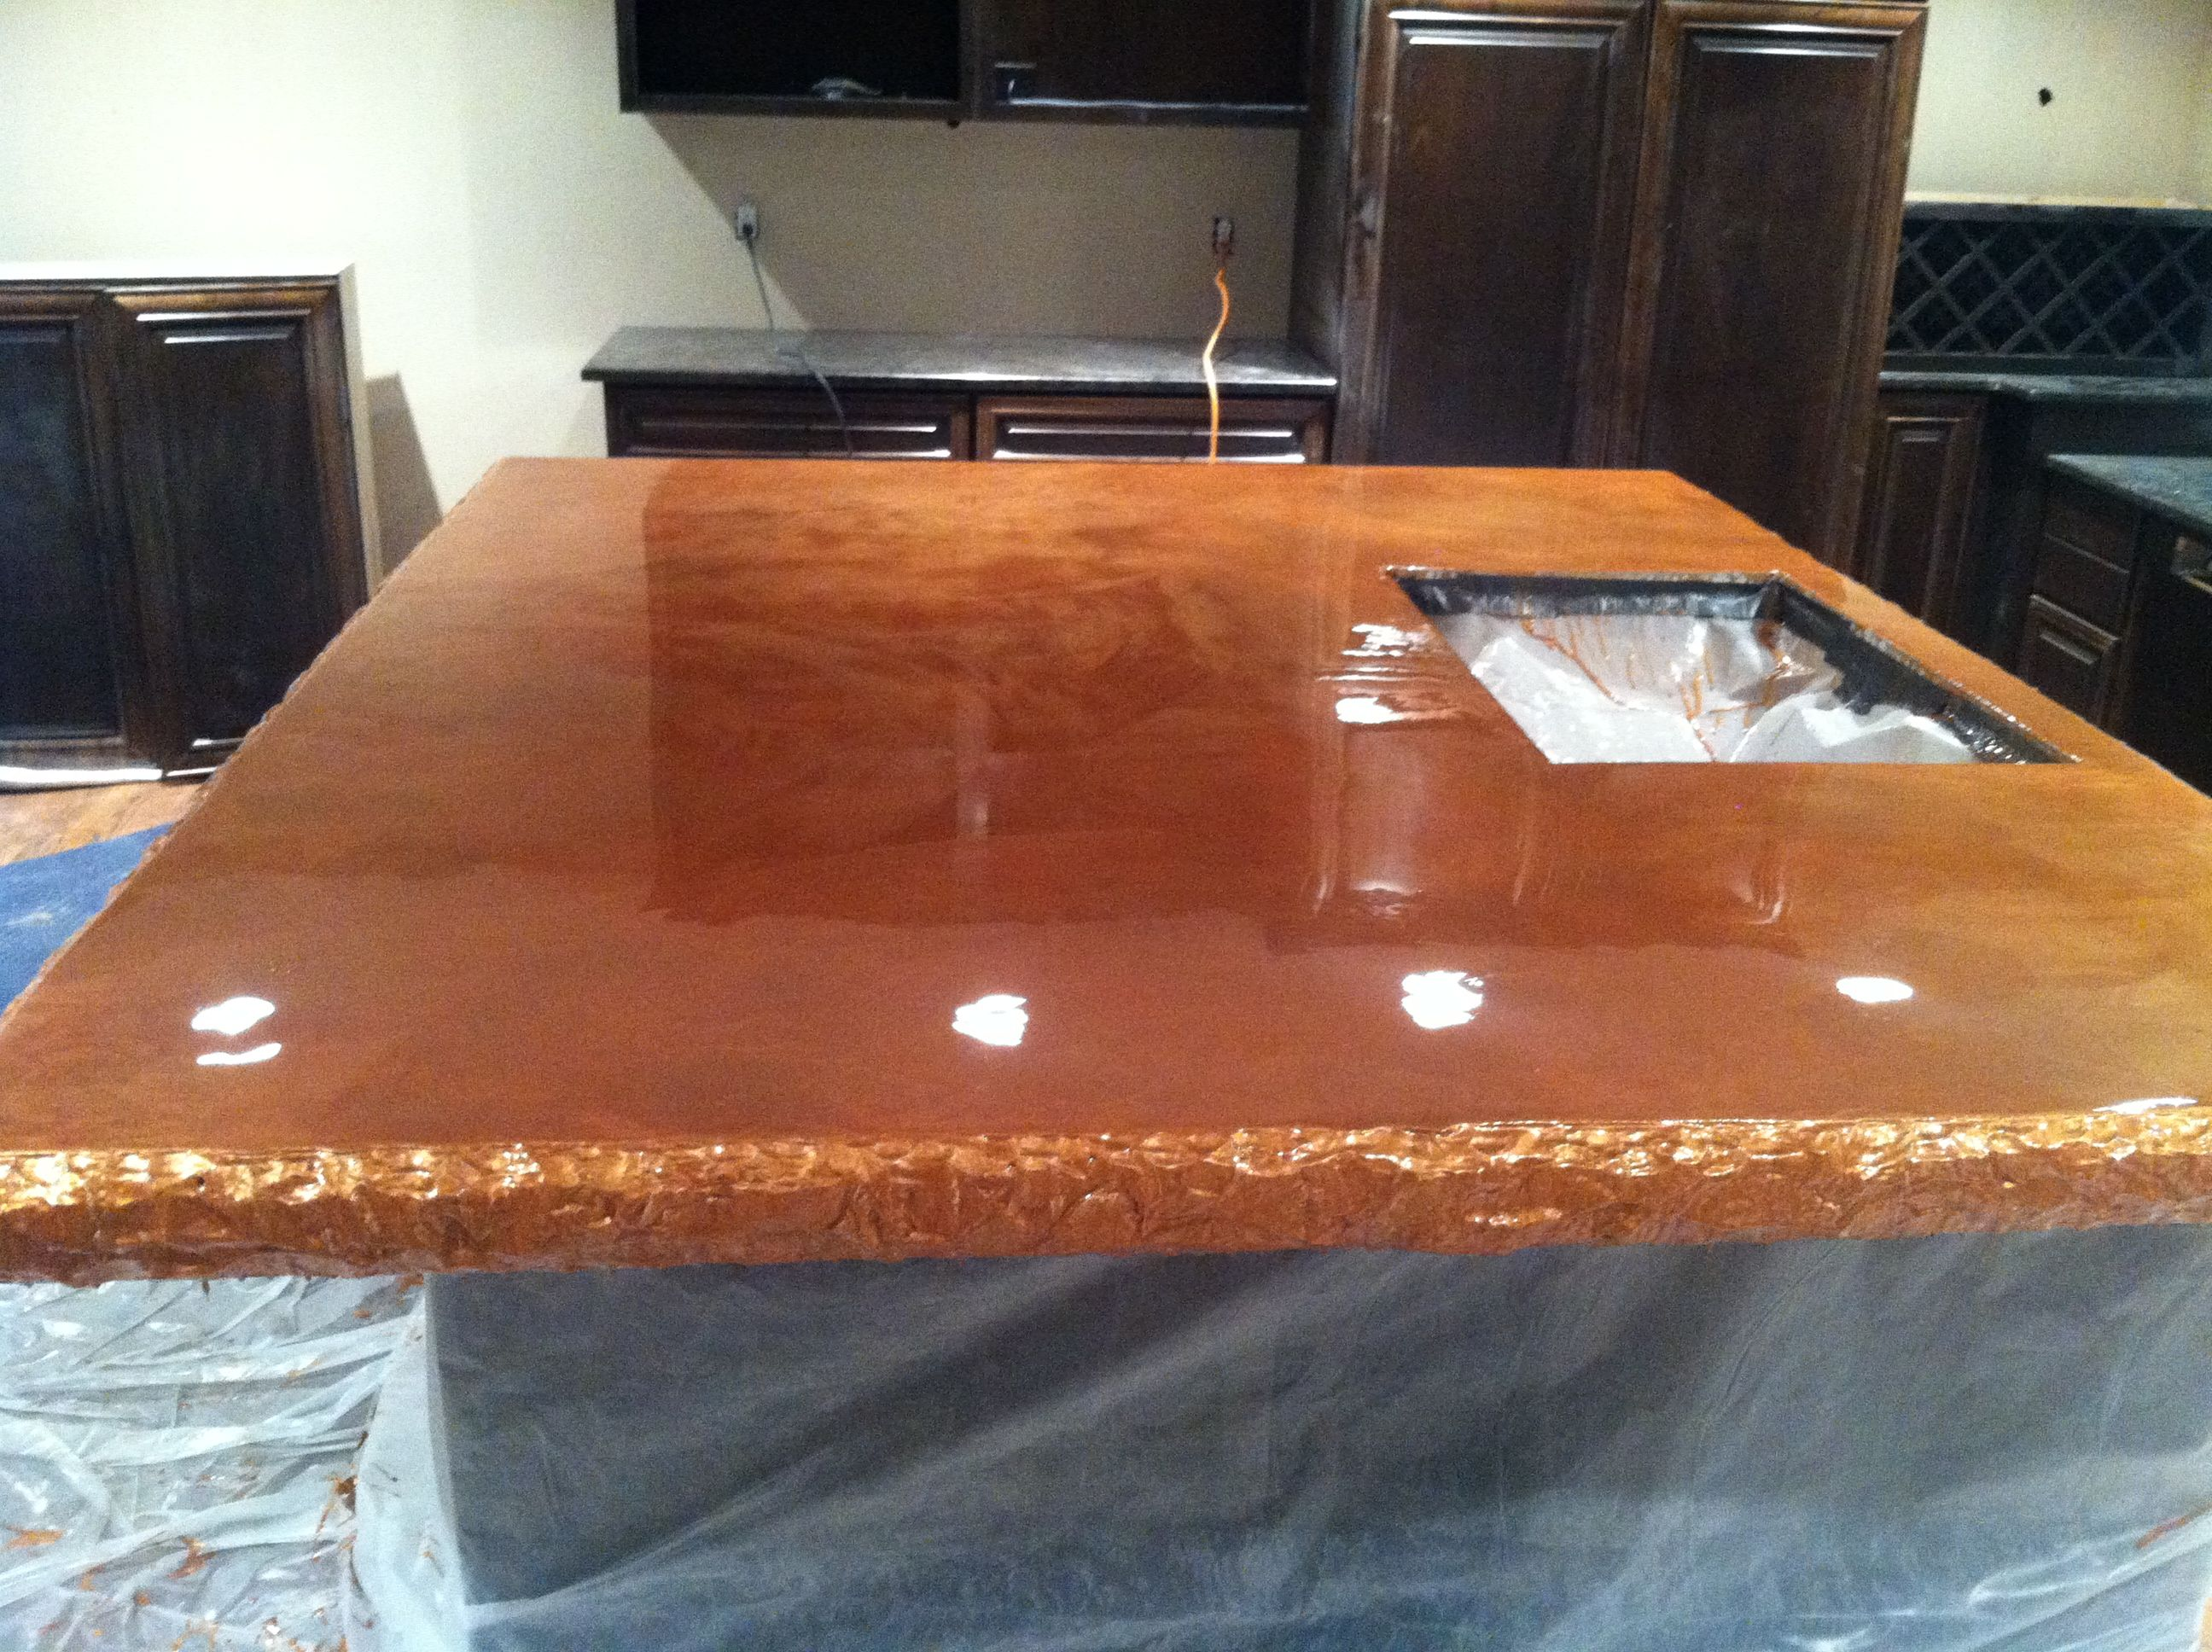 Fiber Optic Countertop Kitchen Island Top Concrete Countertop With Metallic